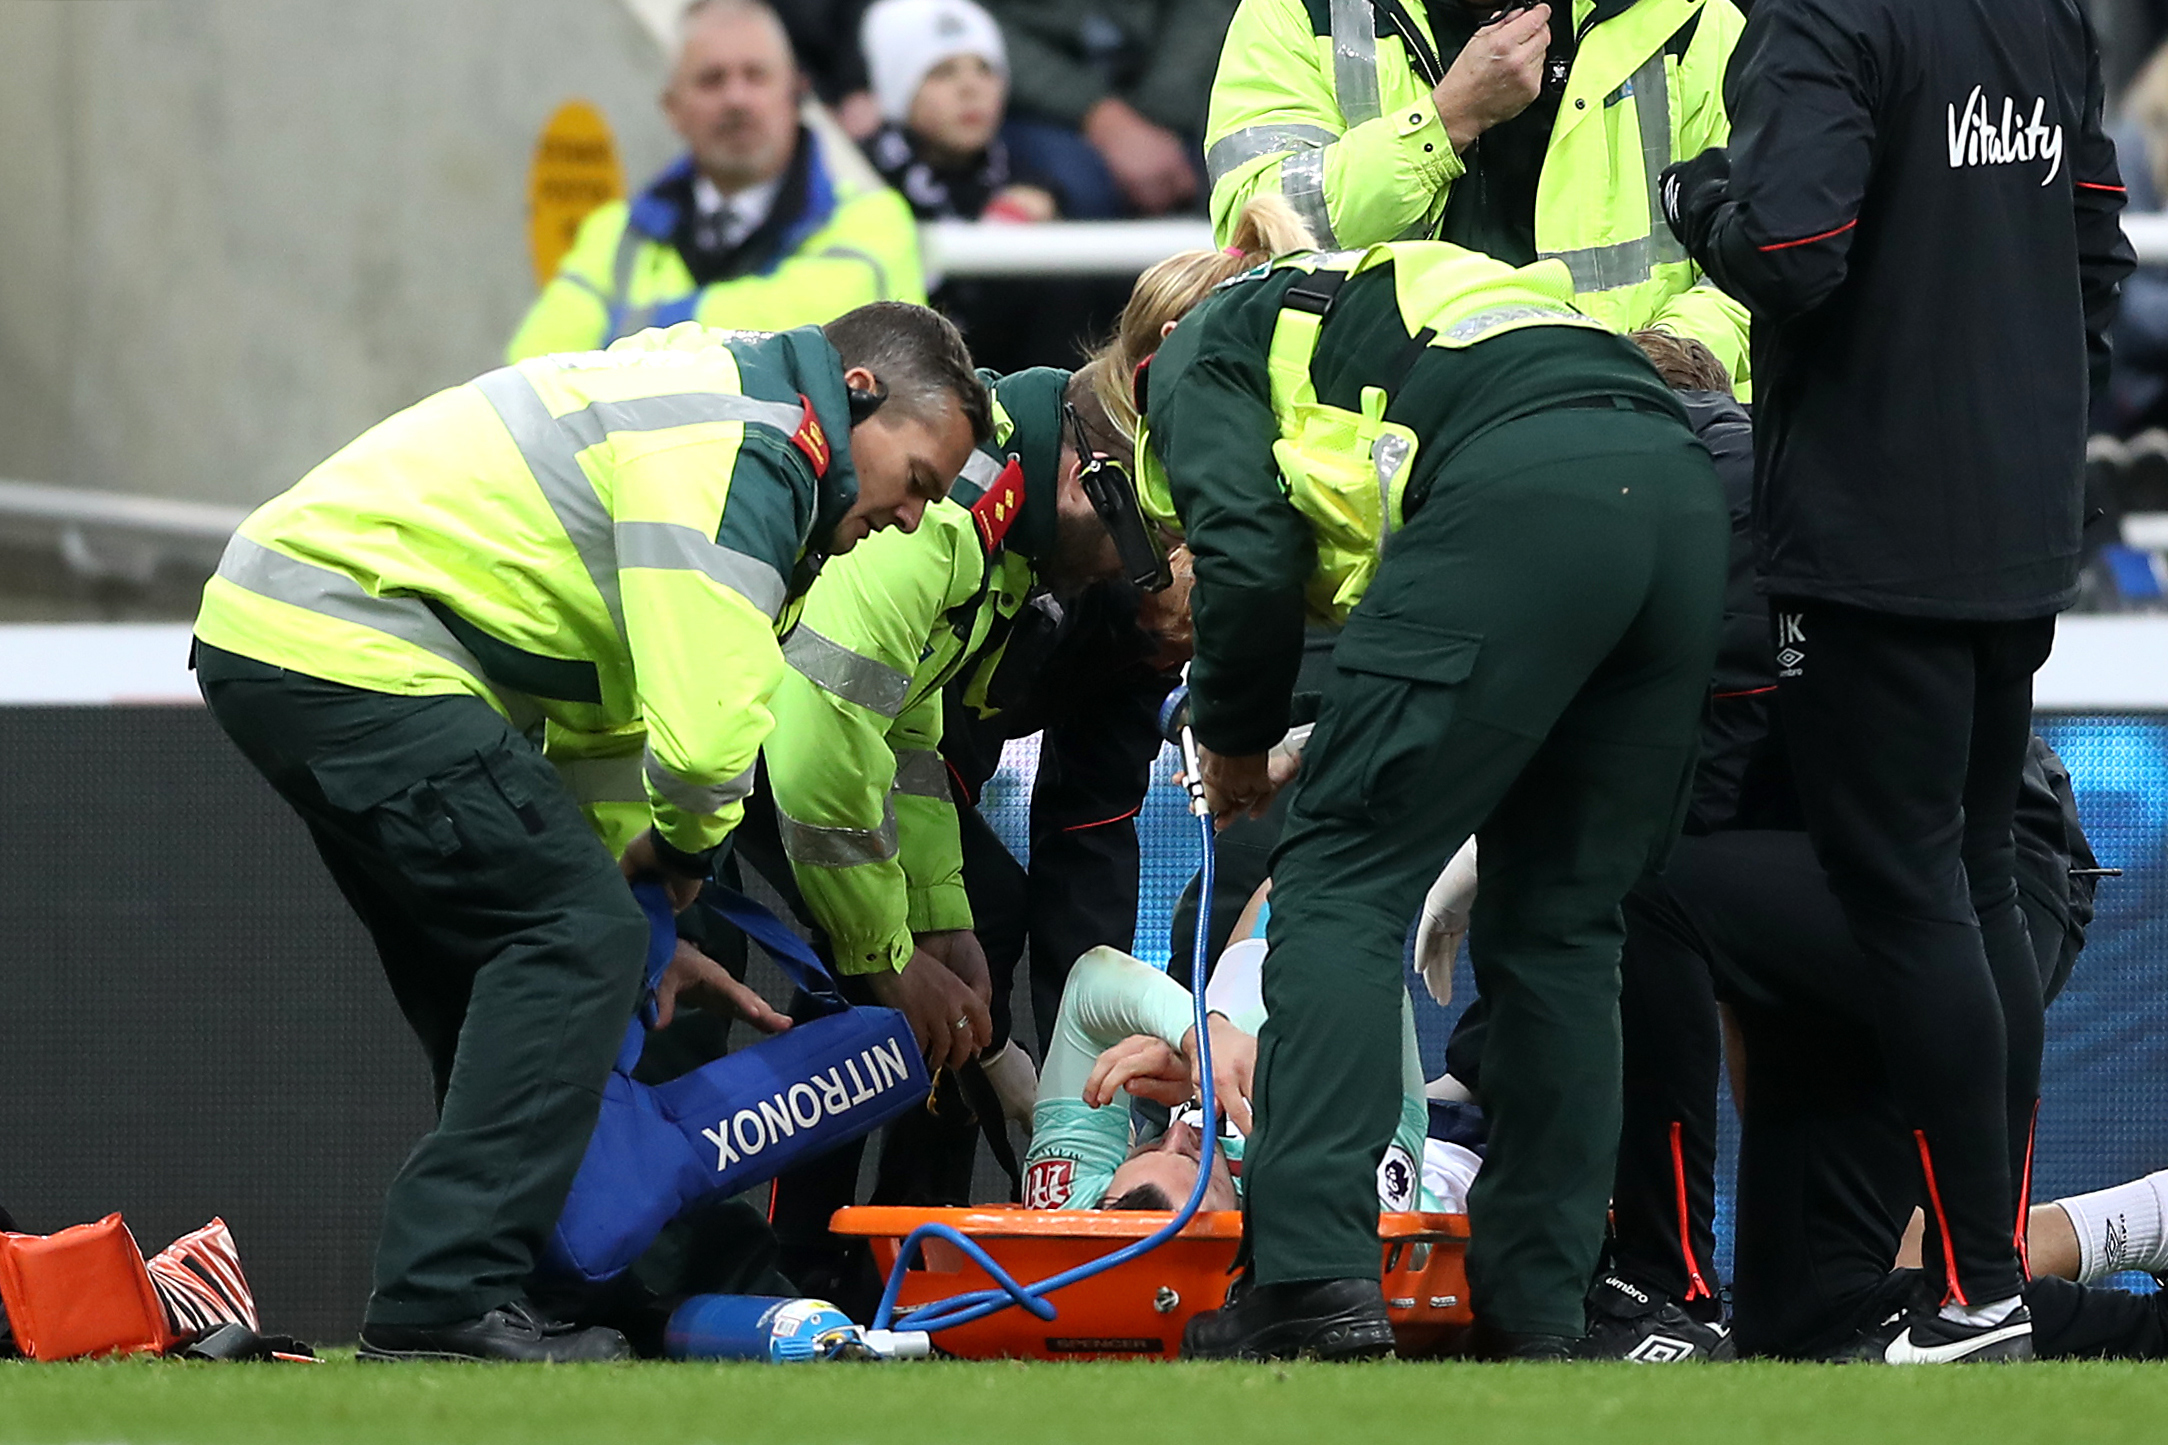 Rondon at the double as Smith stretchered off in Cherries' defeat to Newcastle